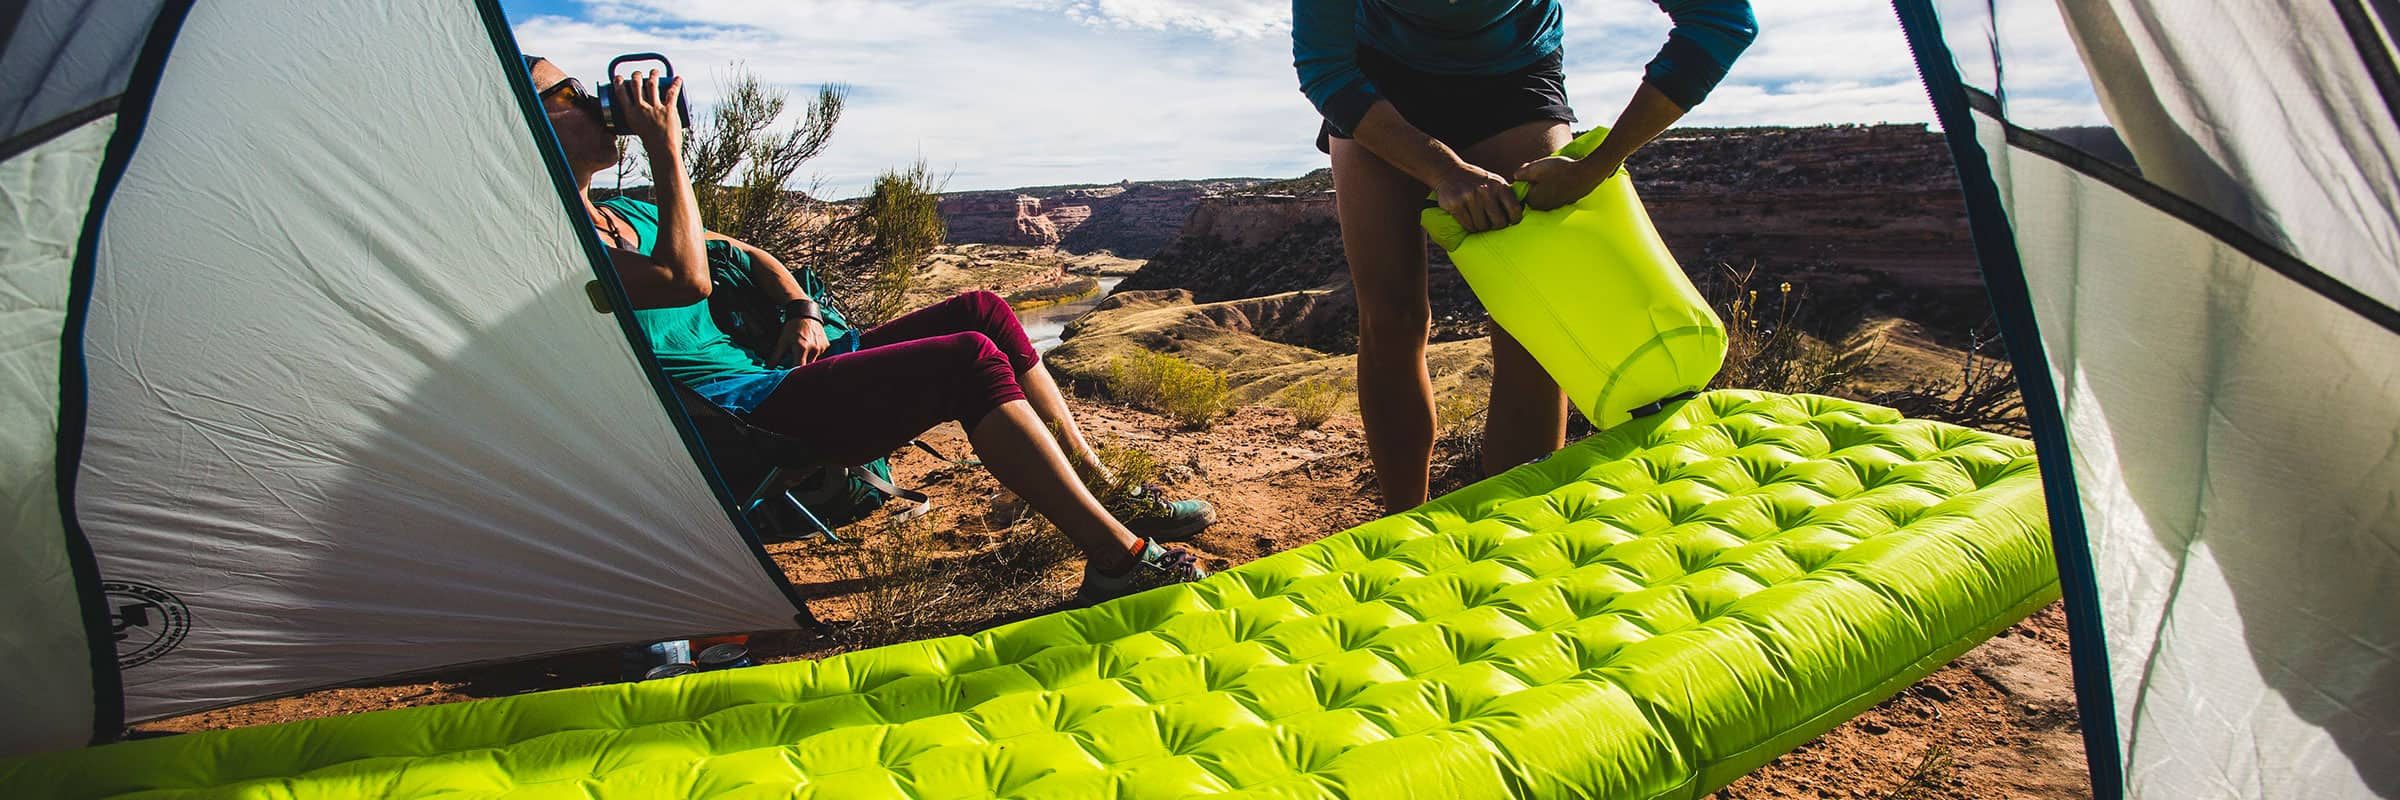 Big Agnes, Camping, Exped, NEMO Equipment, Sea to Summit, Therm-a-Rest. Best Camping Mattresses 2019